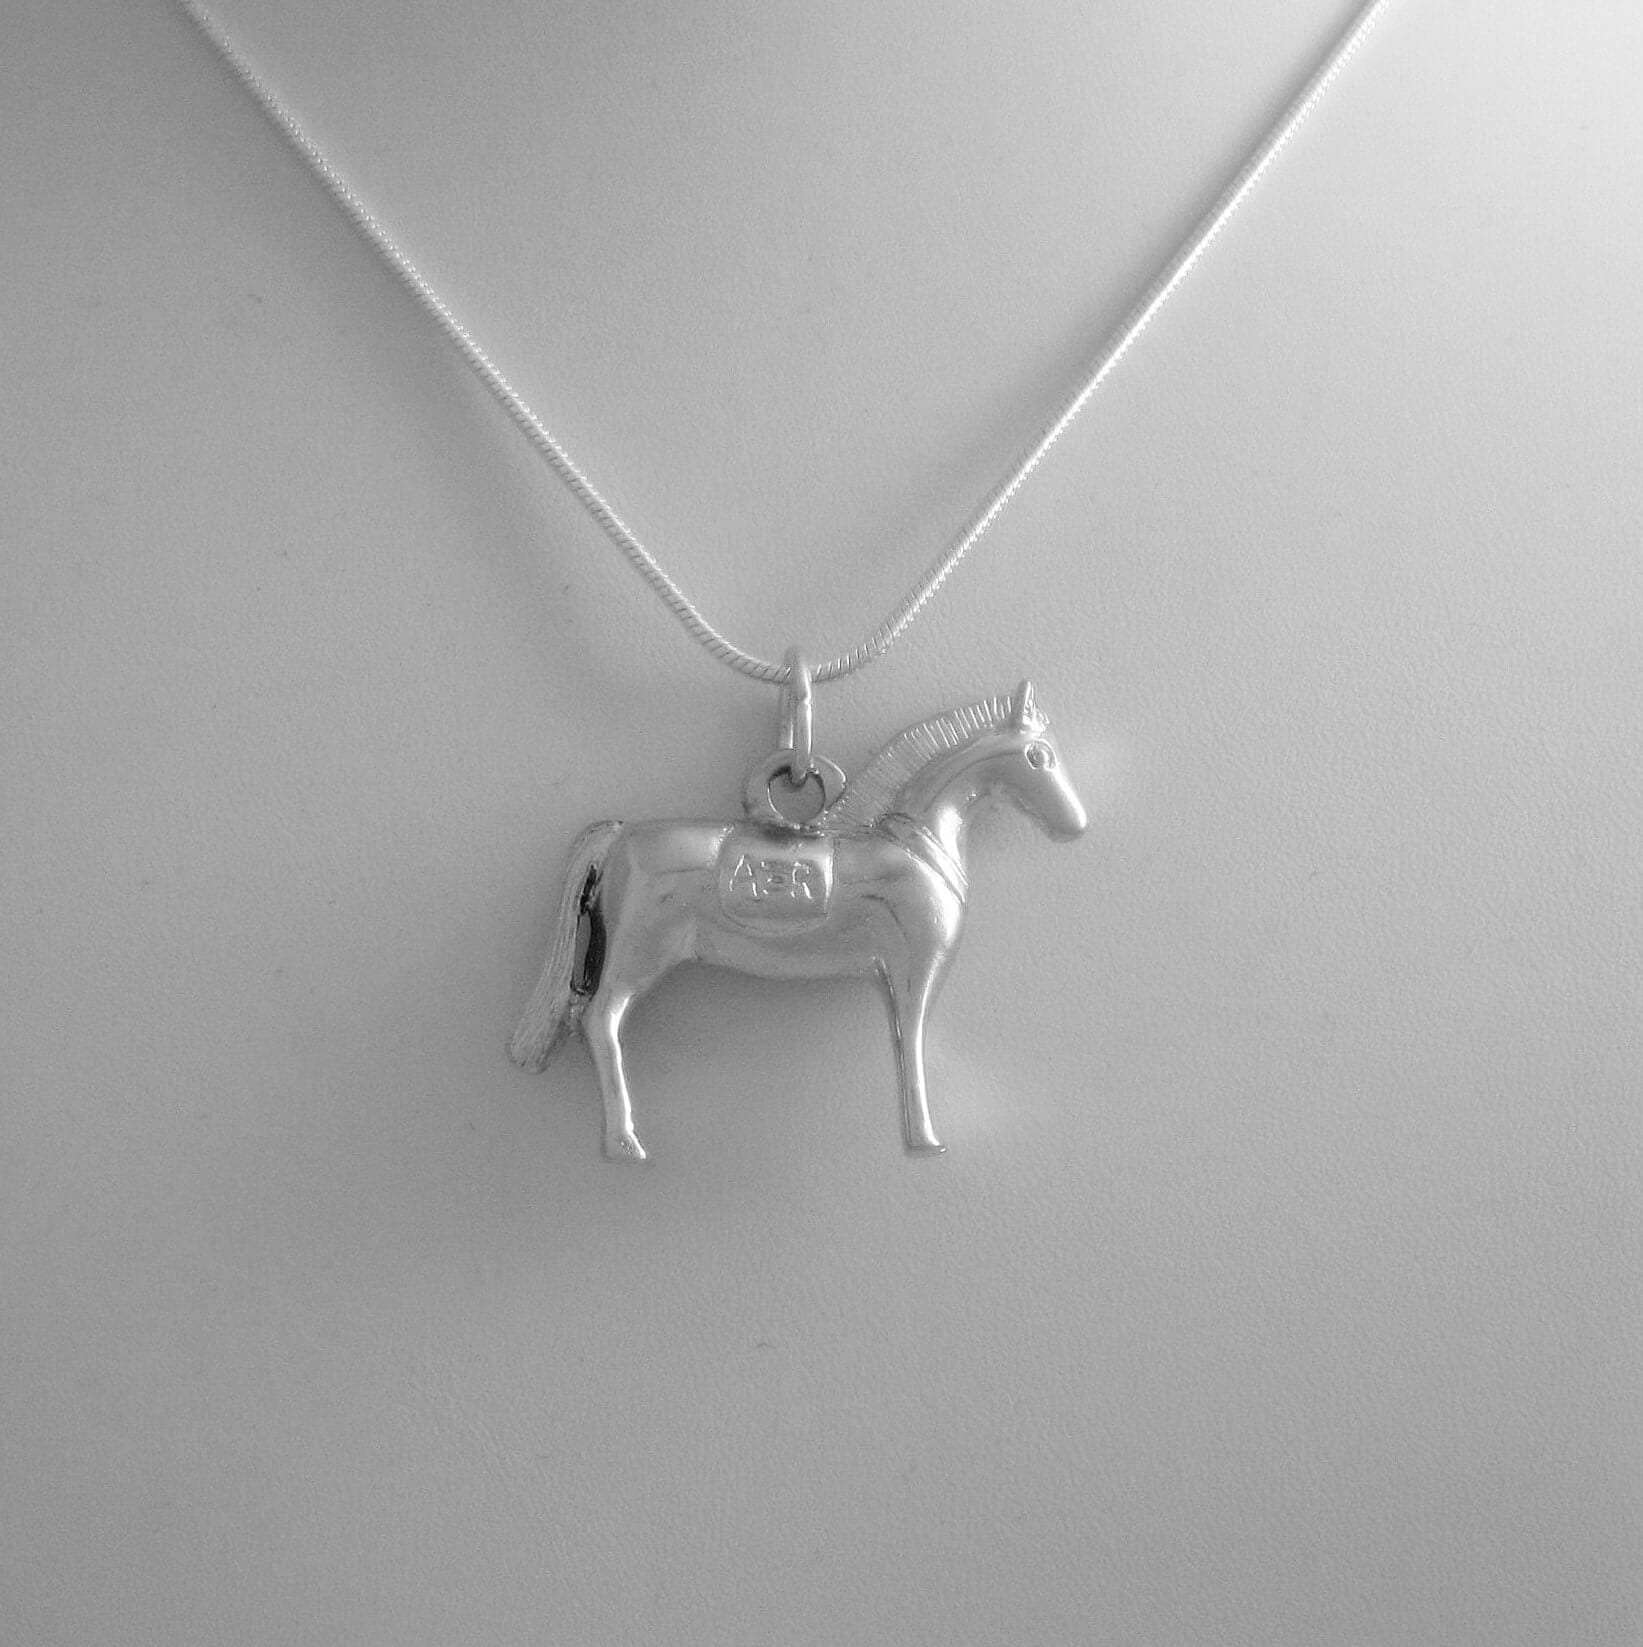 20 perfect gifts for the horse crazy kid ihearthorses amy ragsdale horse totem negle Gallery